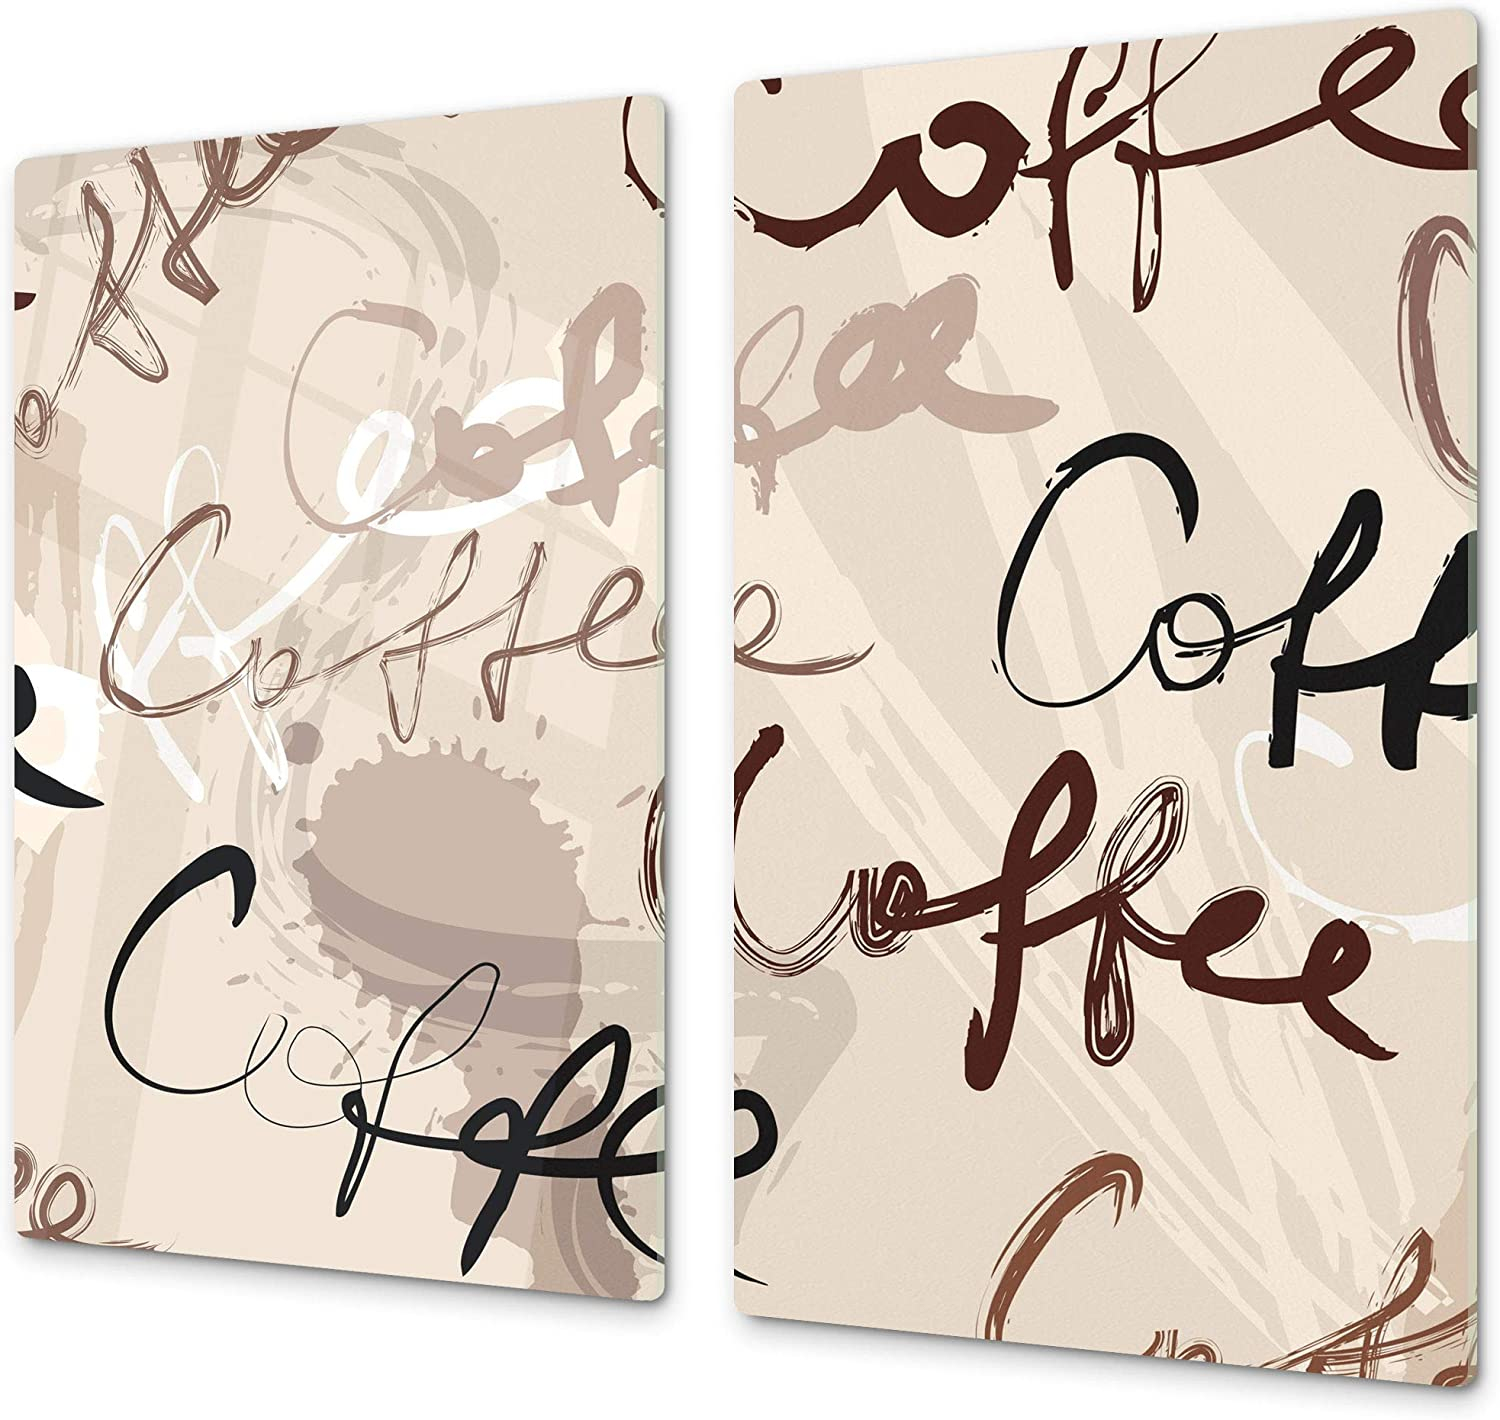 """KITCHEN BOARD & Induction Cooktop Cover – Glass Pastry Board; MEASURES: SINGLE: 23,62"""" x 20,47""""; DOUBLE: 2x 11,81"""" x 20,47""""; D05 Coffee Series: Coffee 64"""